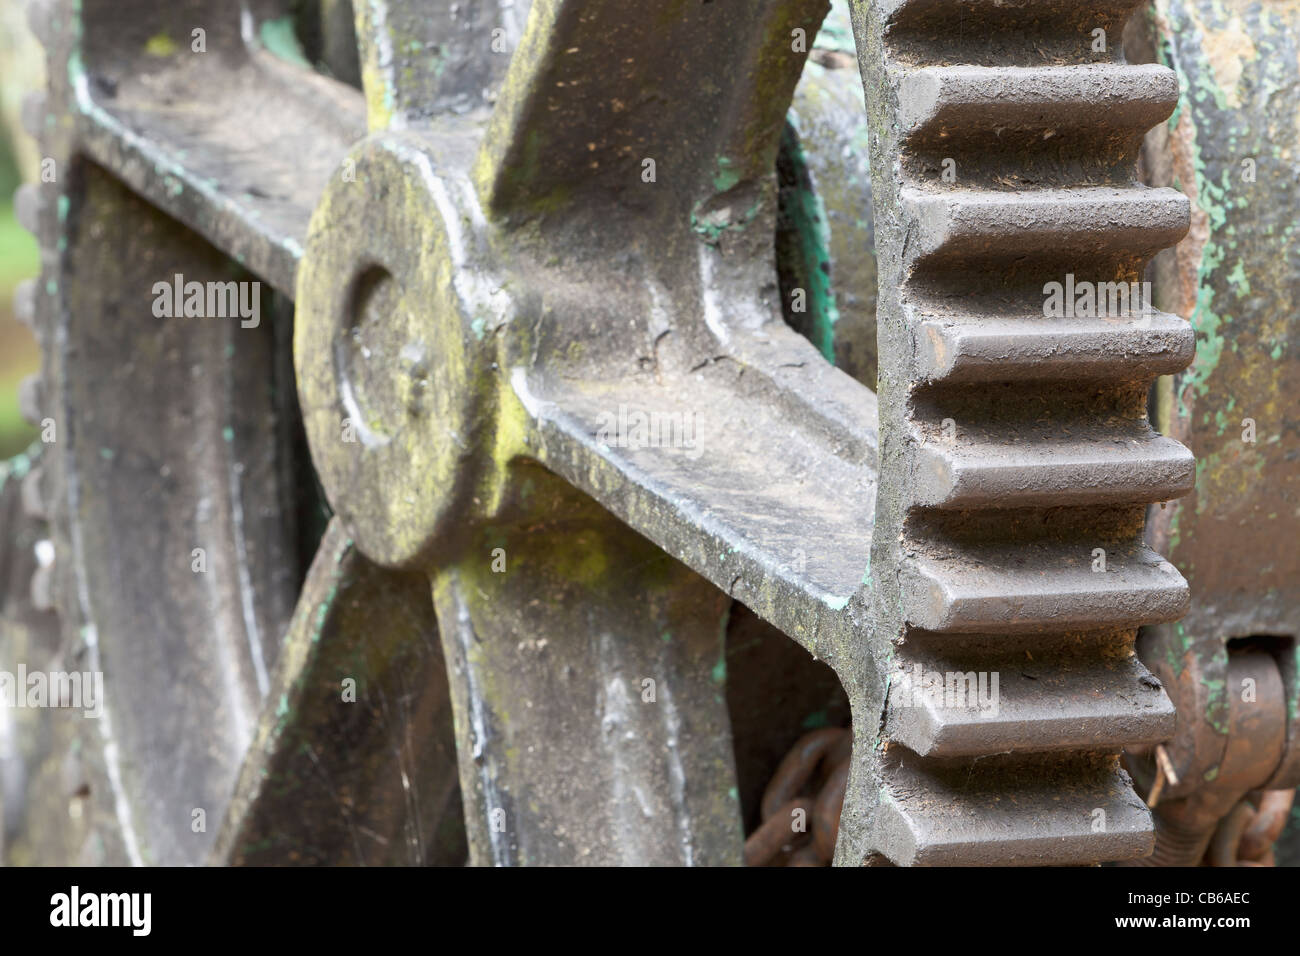 Detail of the gearing of a crane alongside the Bridgewater Canal in Worsley, Manchester, England - Stock Image